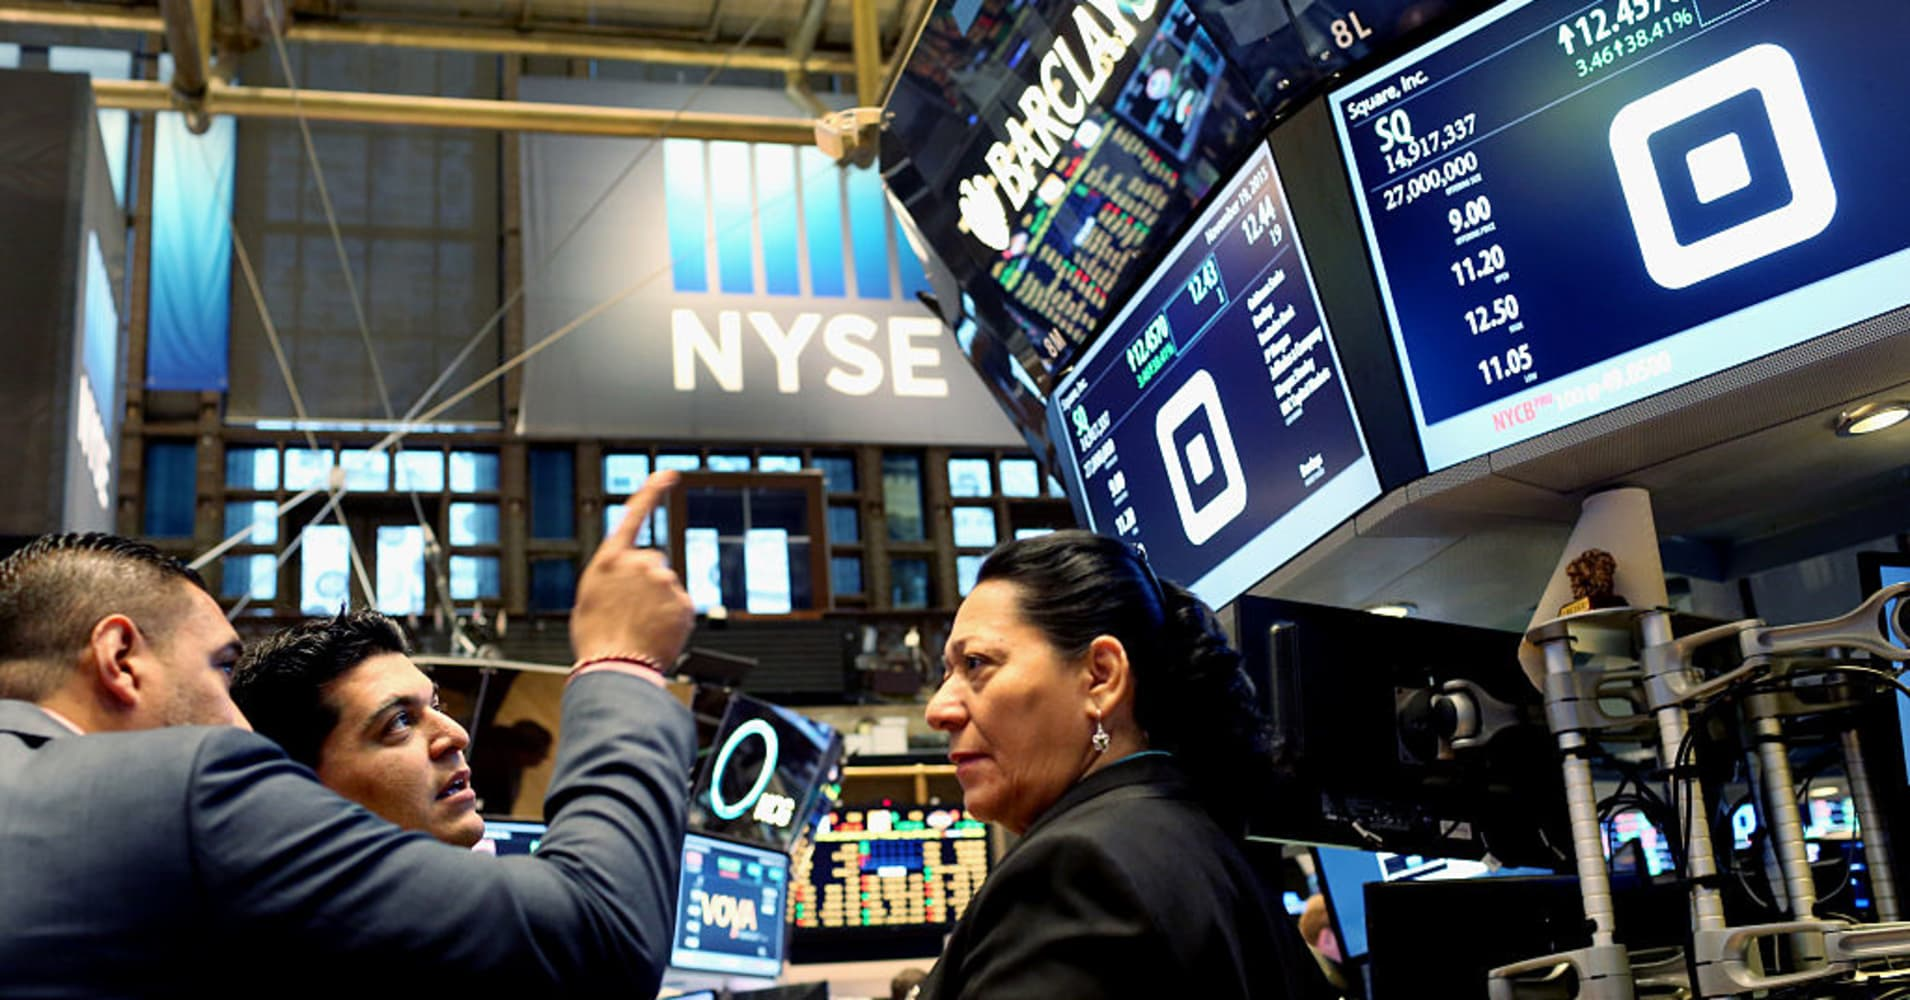 Square shares fall after Raymond James downgrades stock and predicts nearly 30% retreat